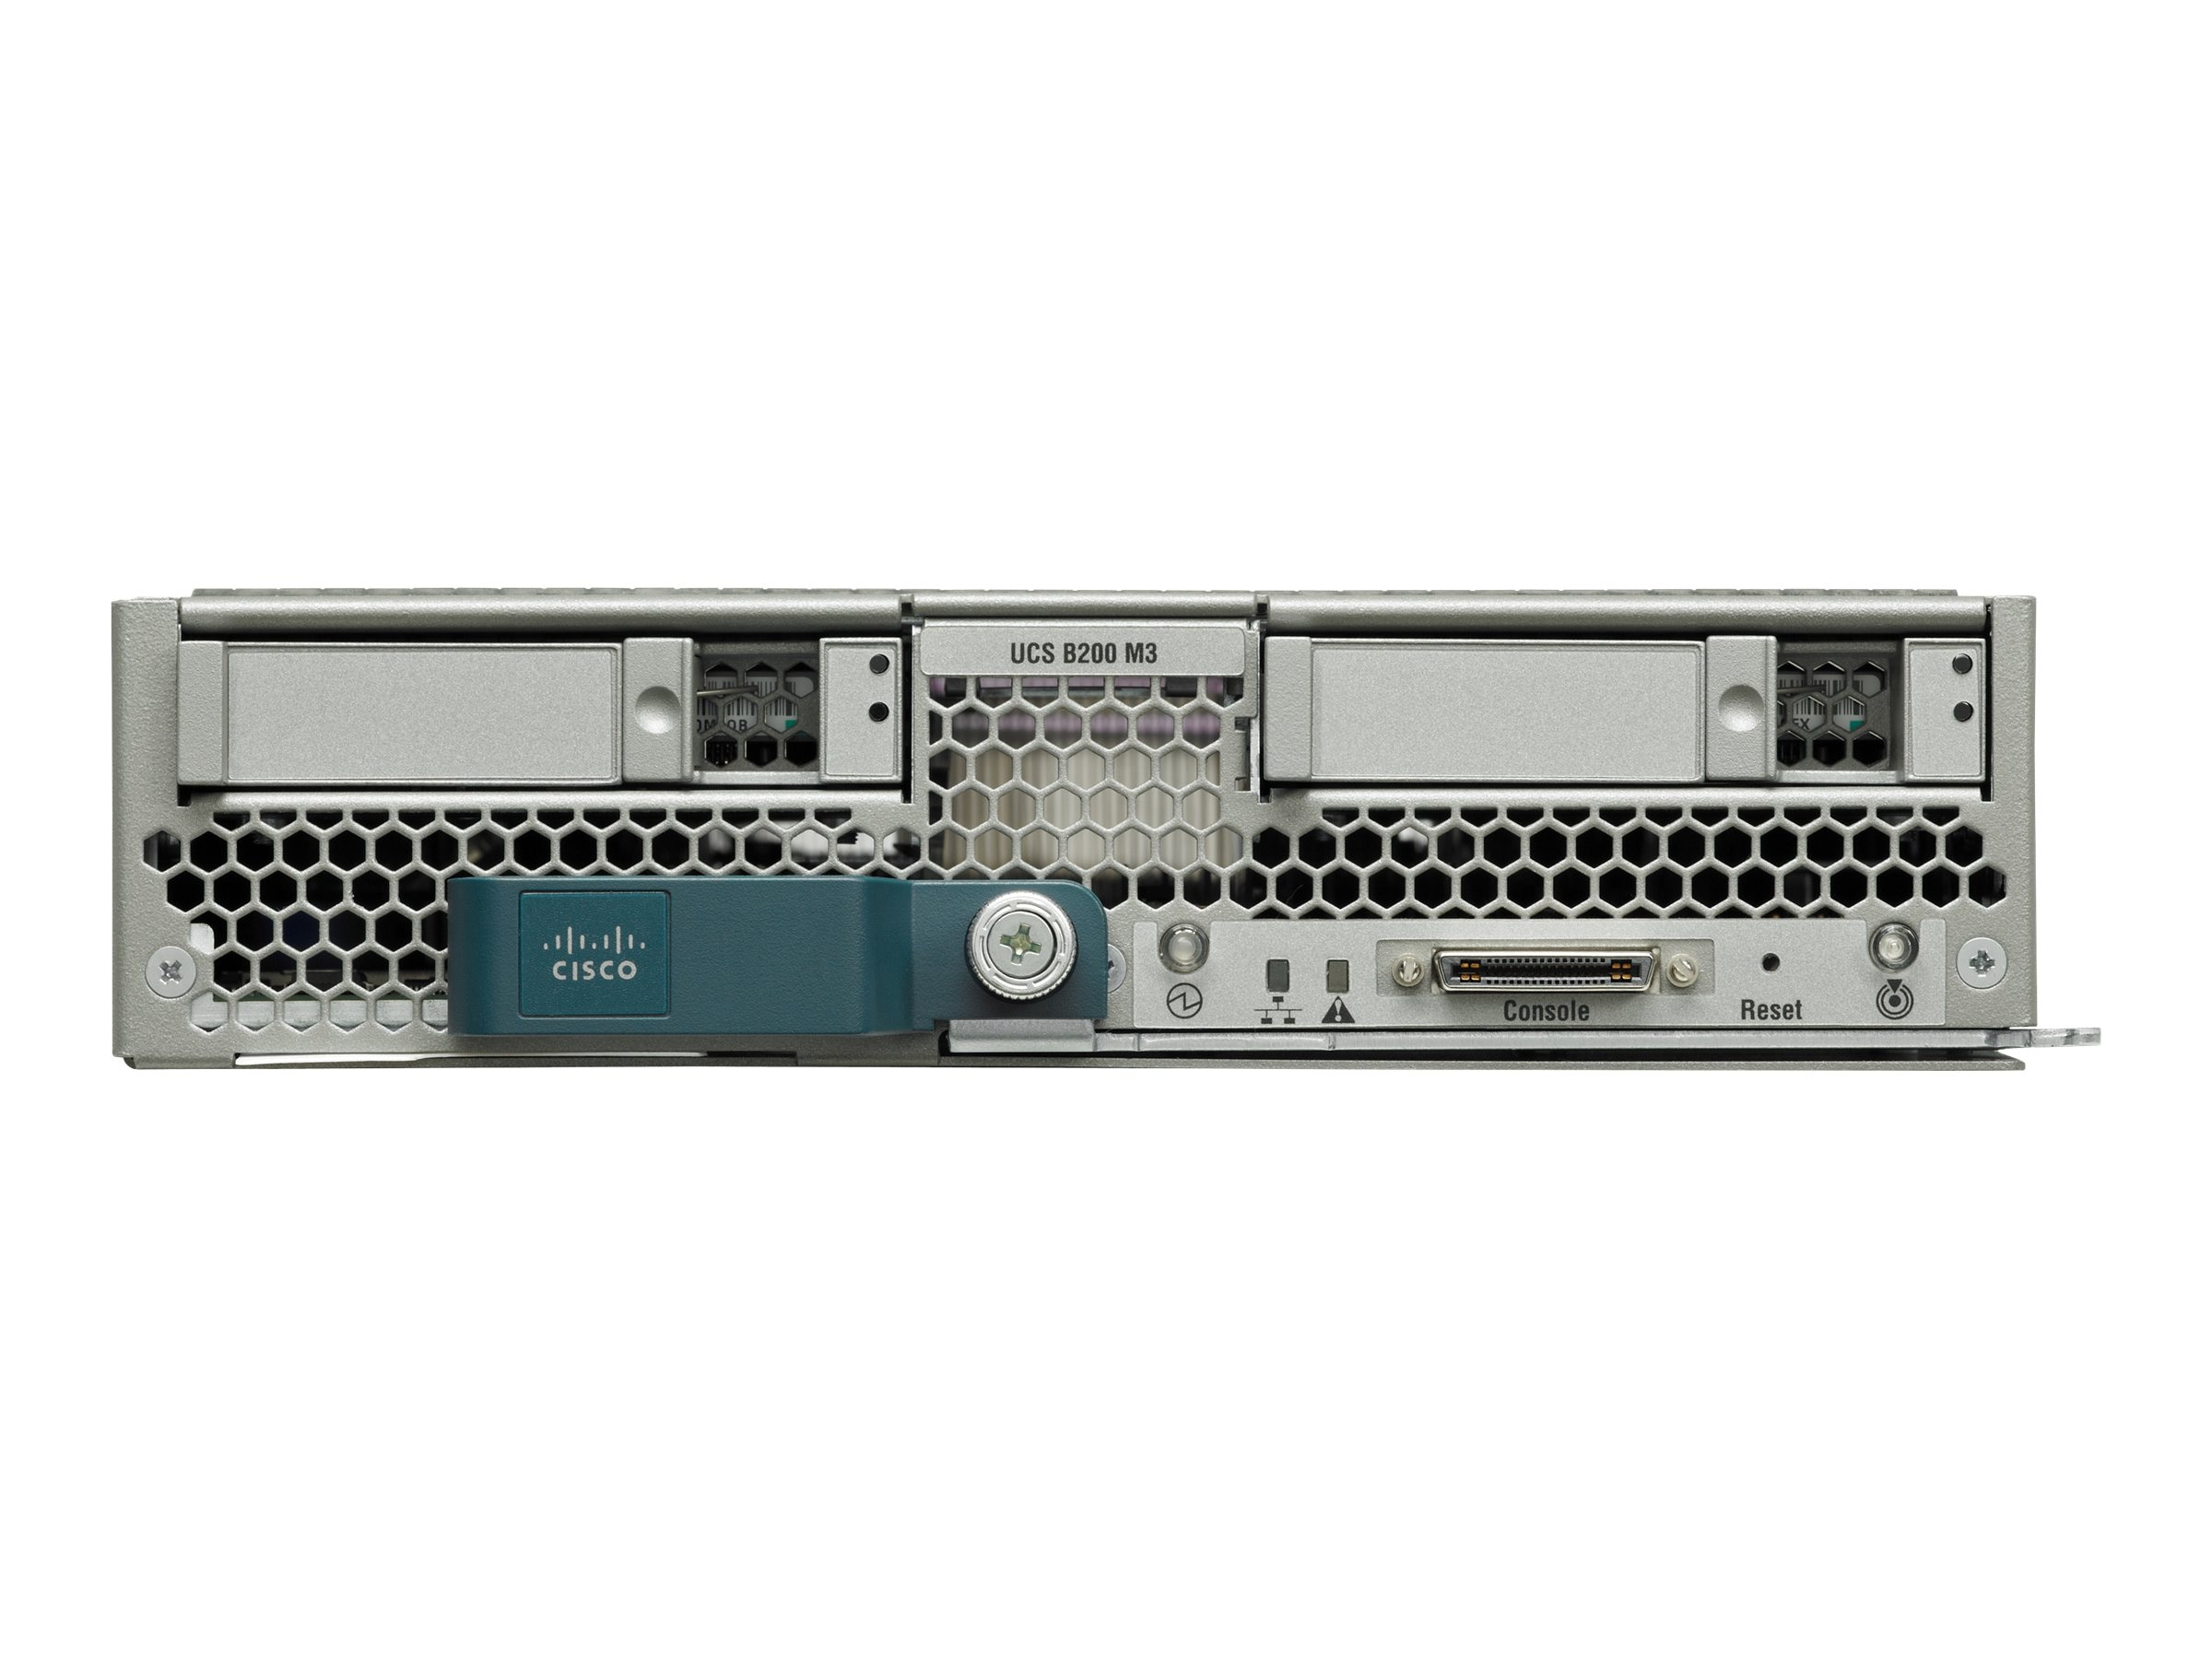 Cisco UCS B200 M3 Value SmartPlay 5108 Chassis (4x)Blades (2x)Xeon E5-2640 v2 2.0GHz 128GB 2x2.5Bays 40Gb, UCS-SP7-B200-V, 16755352, Servers - Blade